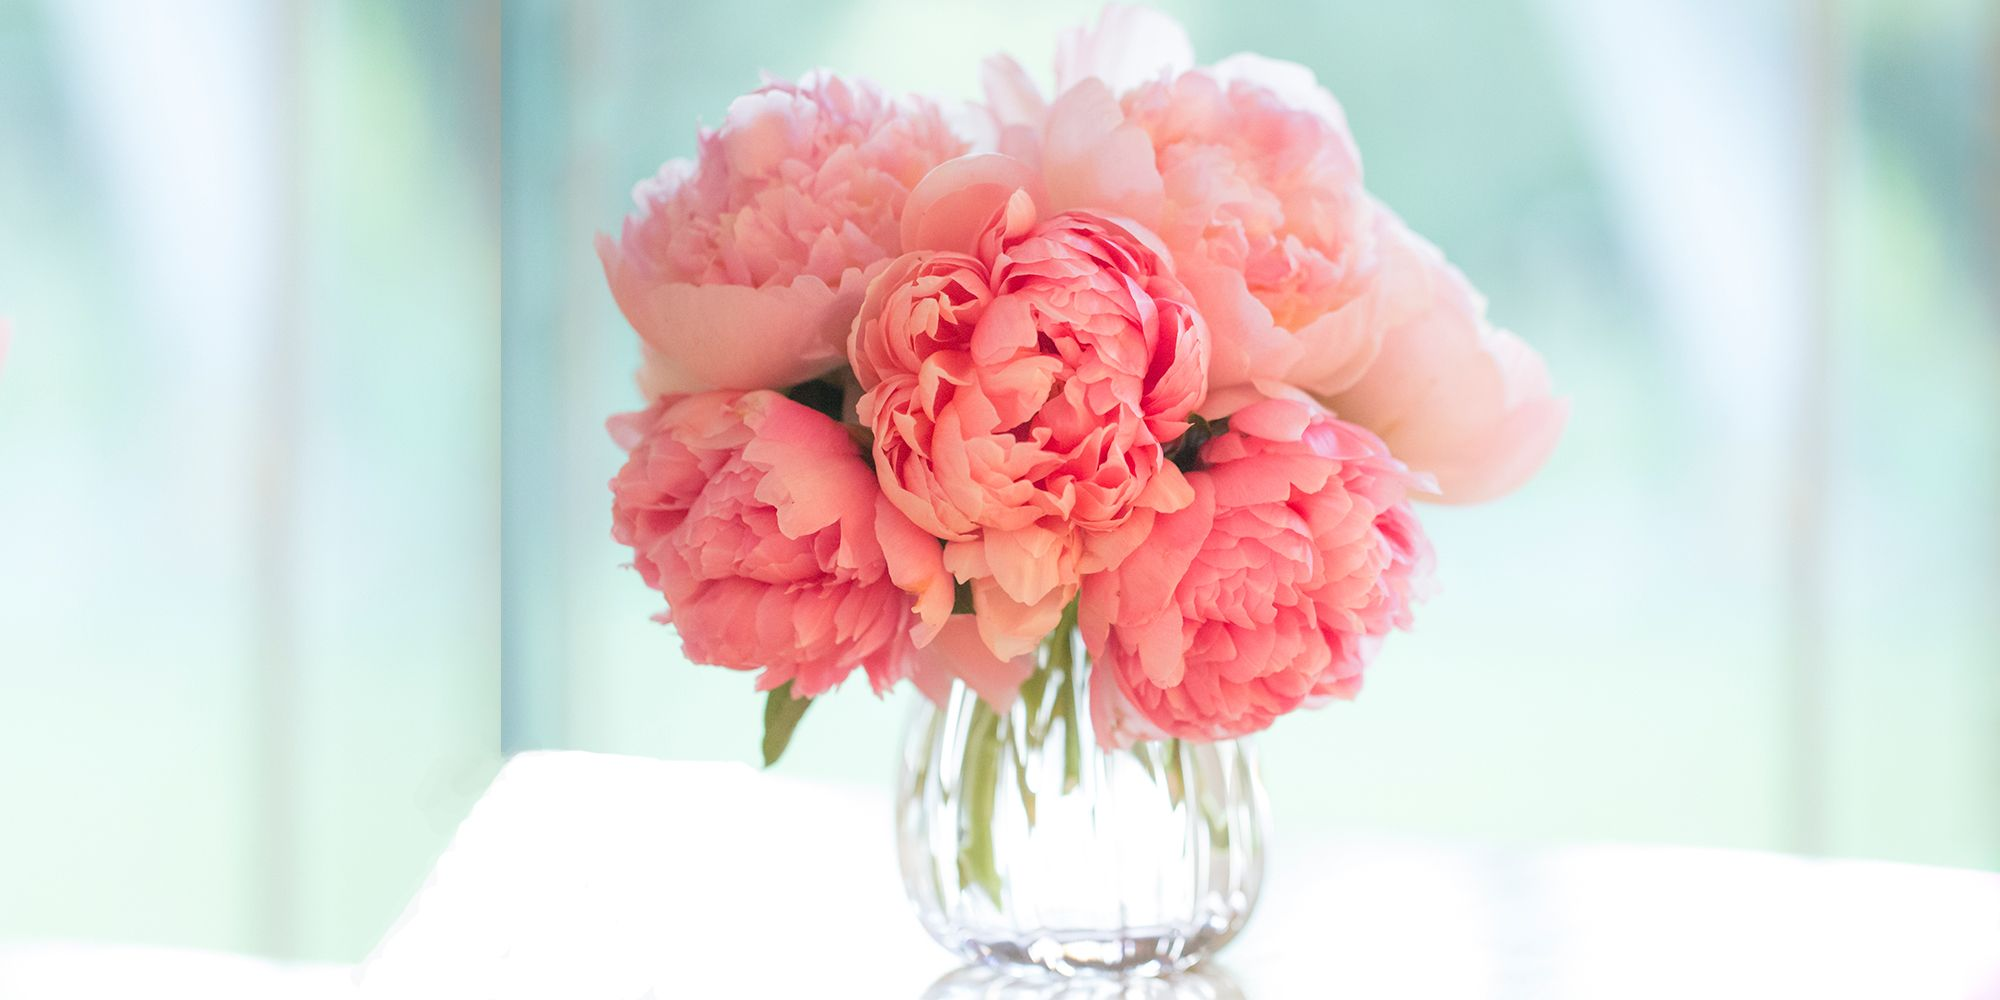 12 Best Flowers for Valentines Day - Popular Roses